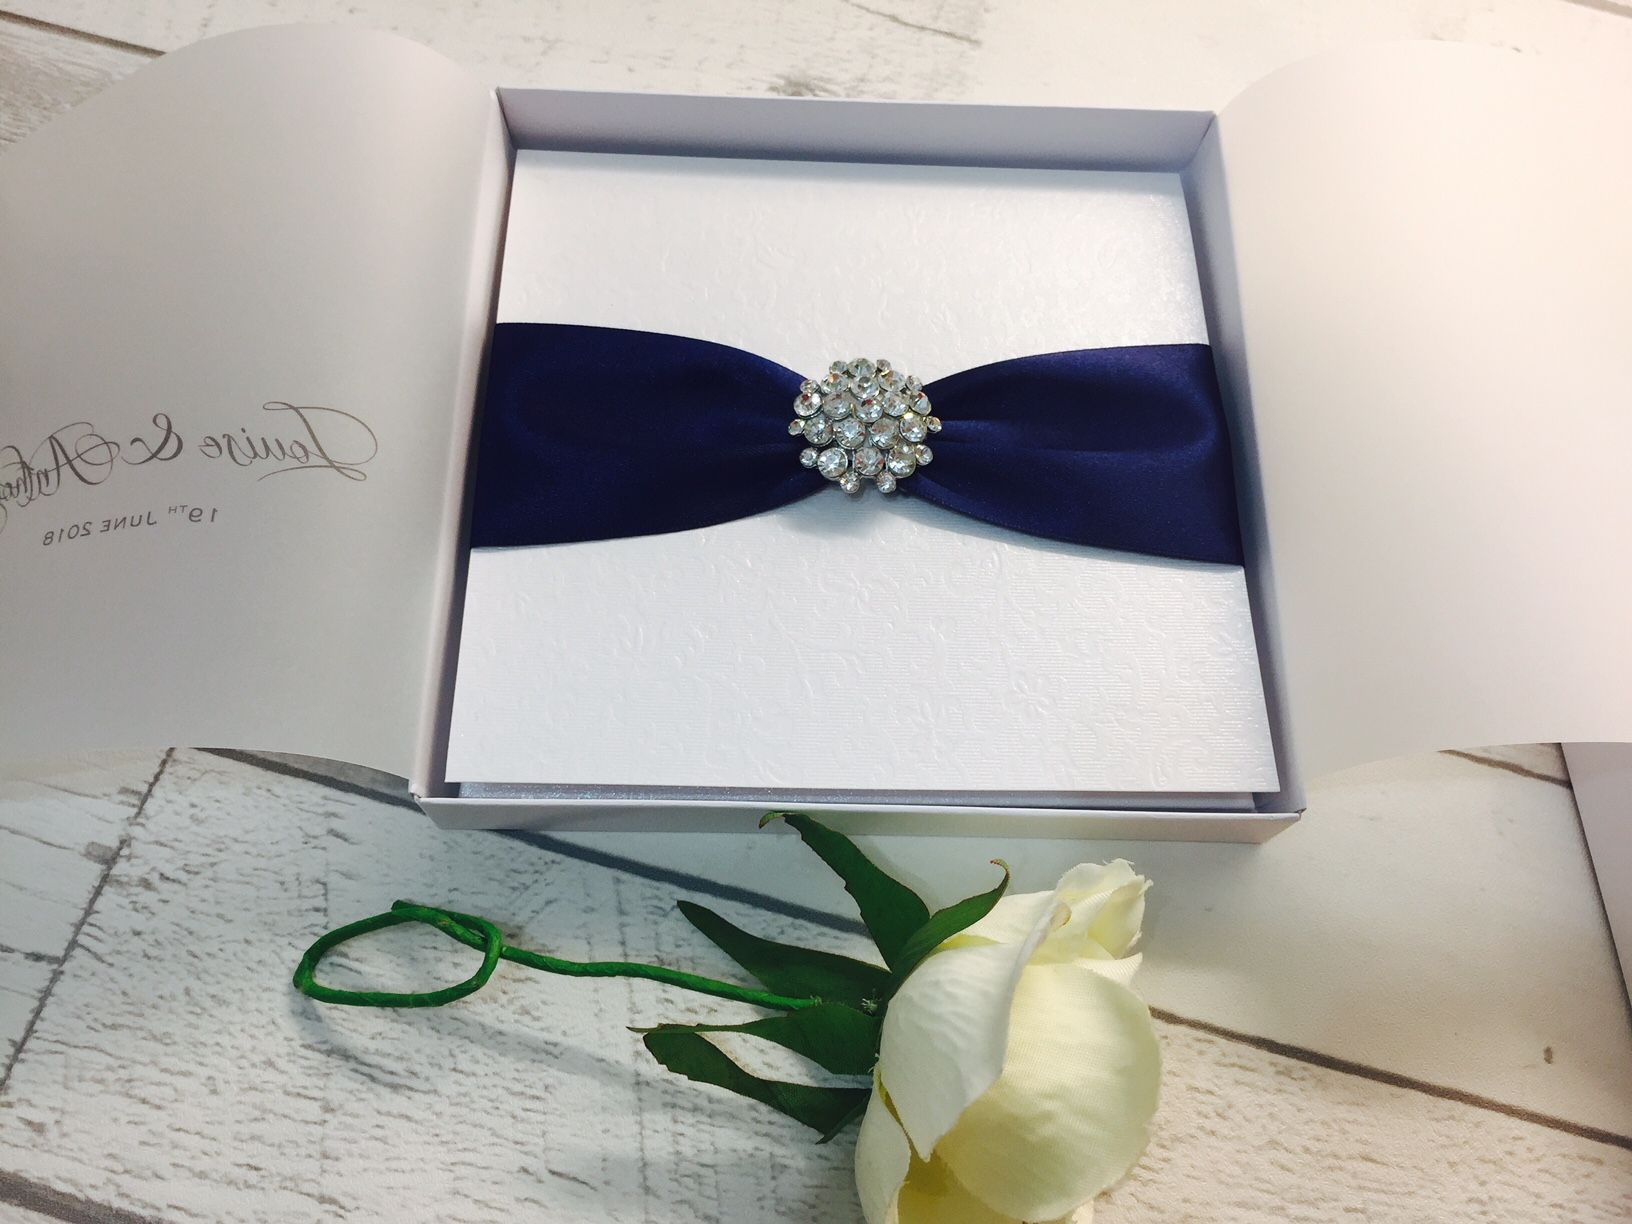 Luxury boxed wedding invitation with navy blue ribbon and diamante brooch